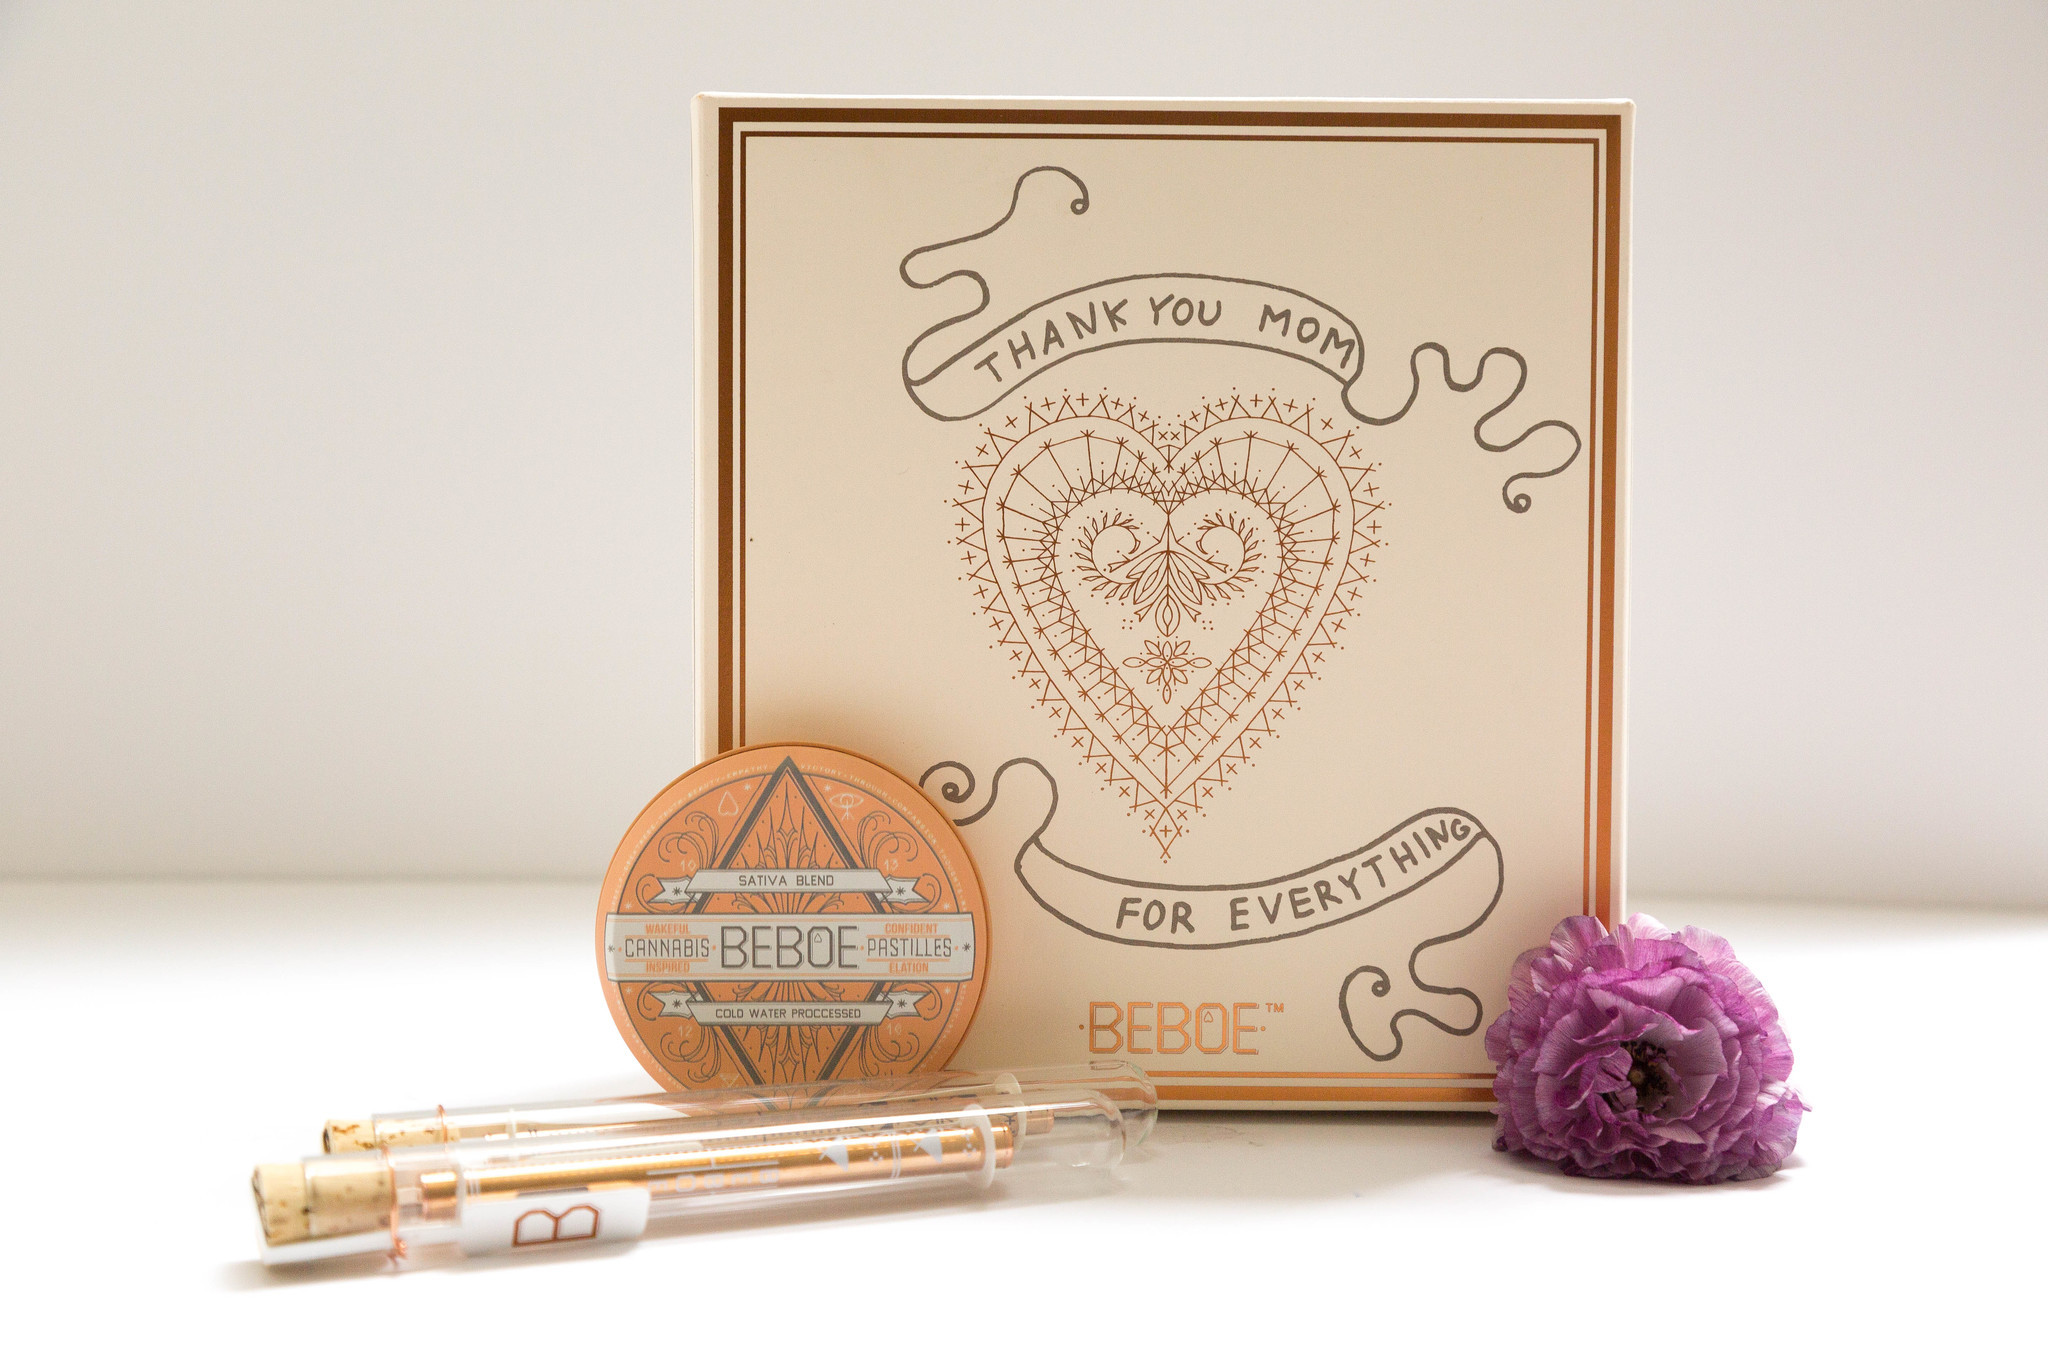 Beboe's limited-edition Mother's Day cannabis gift set.